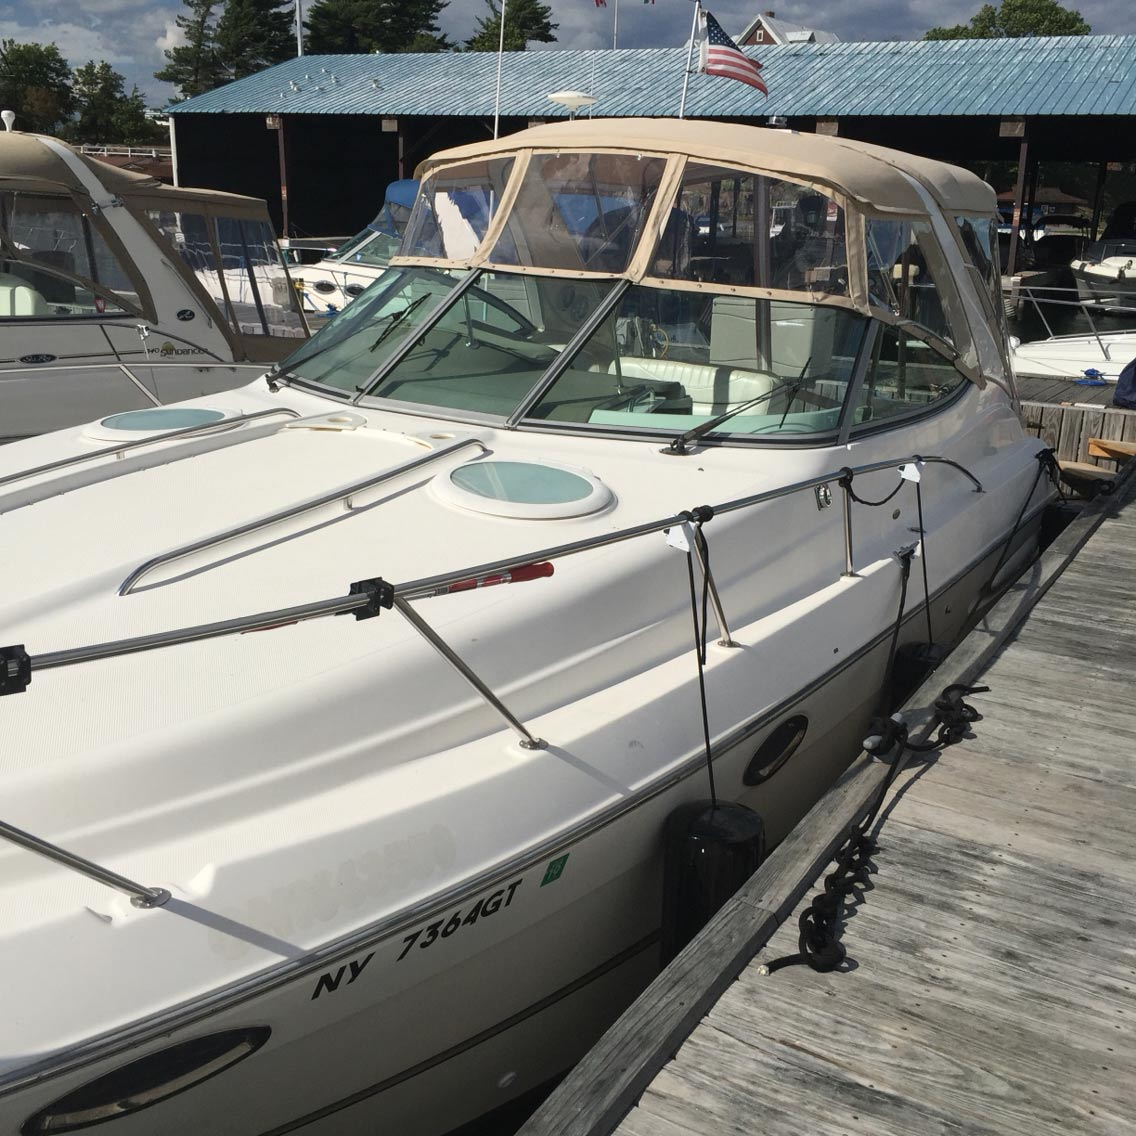 2005 20 Foot Bentley Cruiser Pontoon Boat For Sale In: Maxum 3300 Scr Boats For Sale